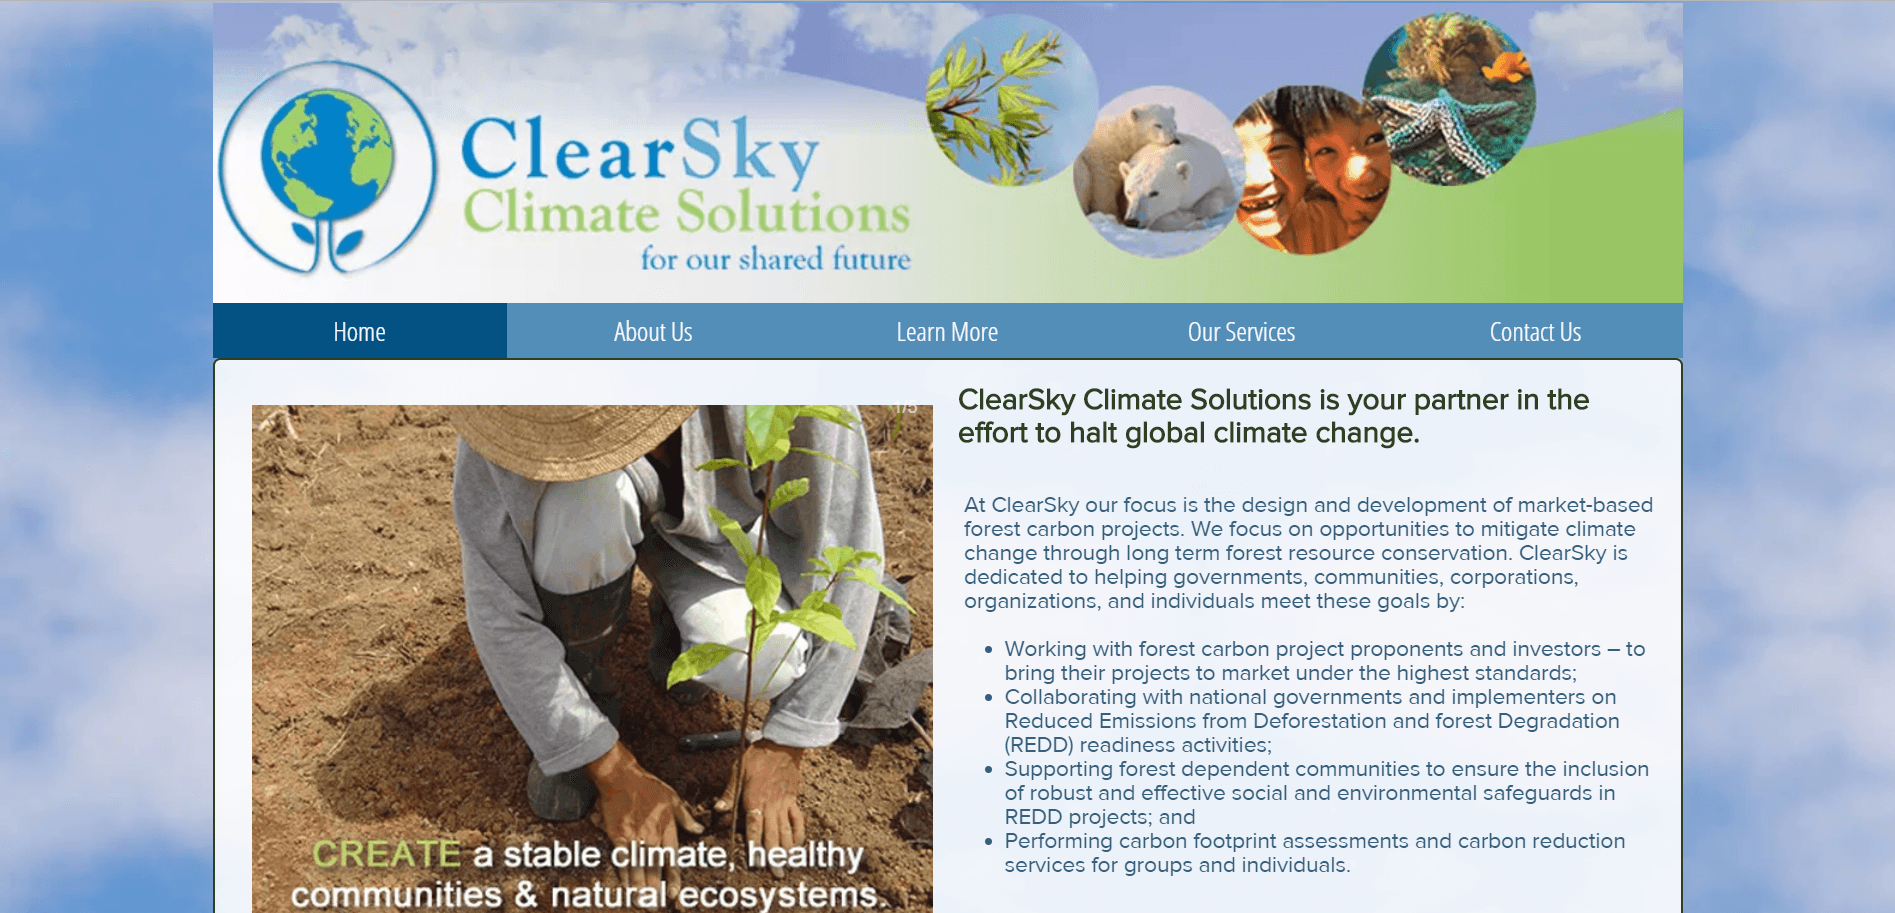 clearsky climate solutions